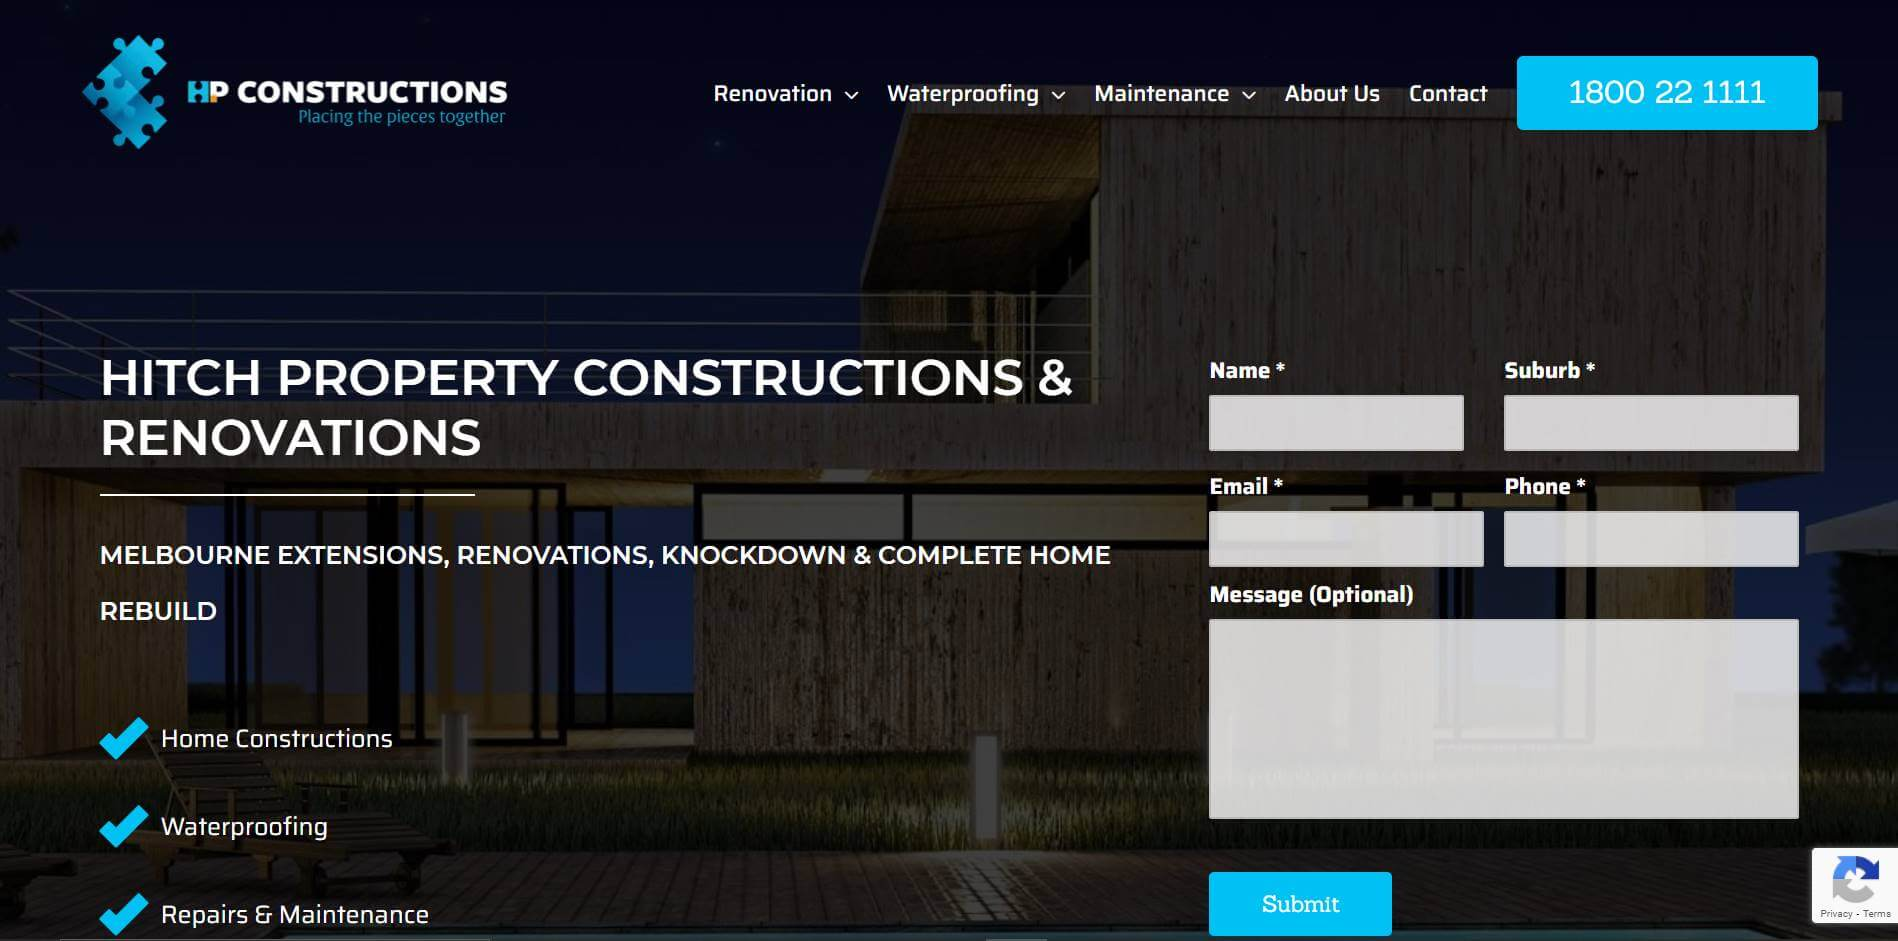 hitch property constructions